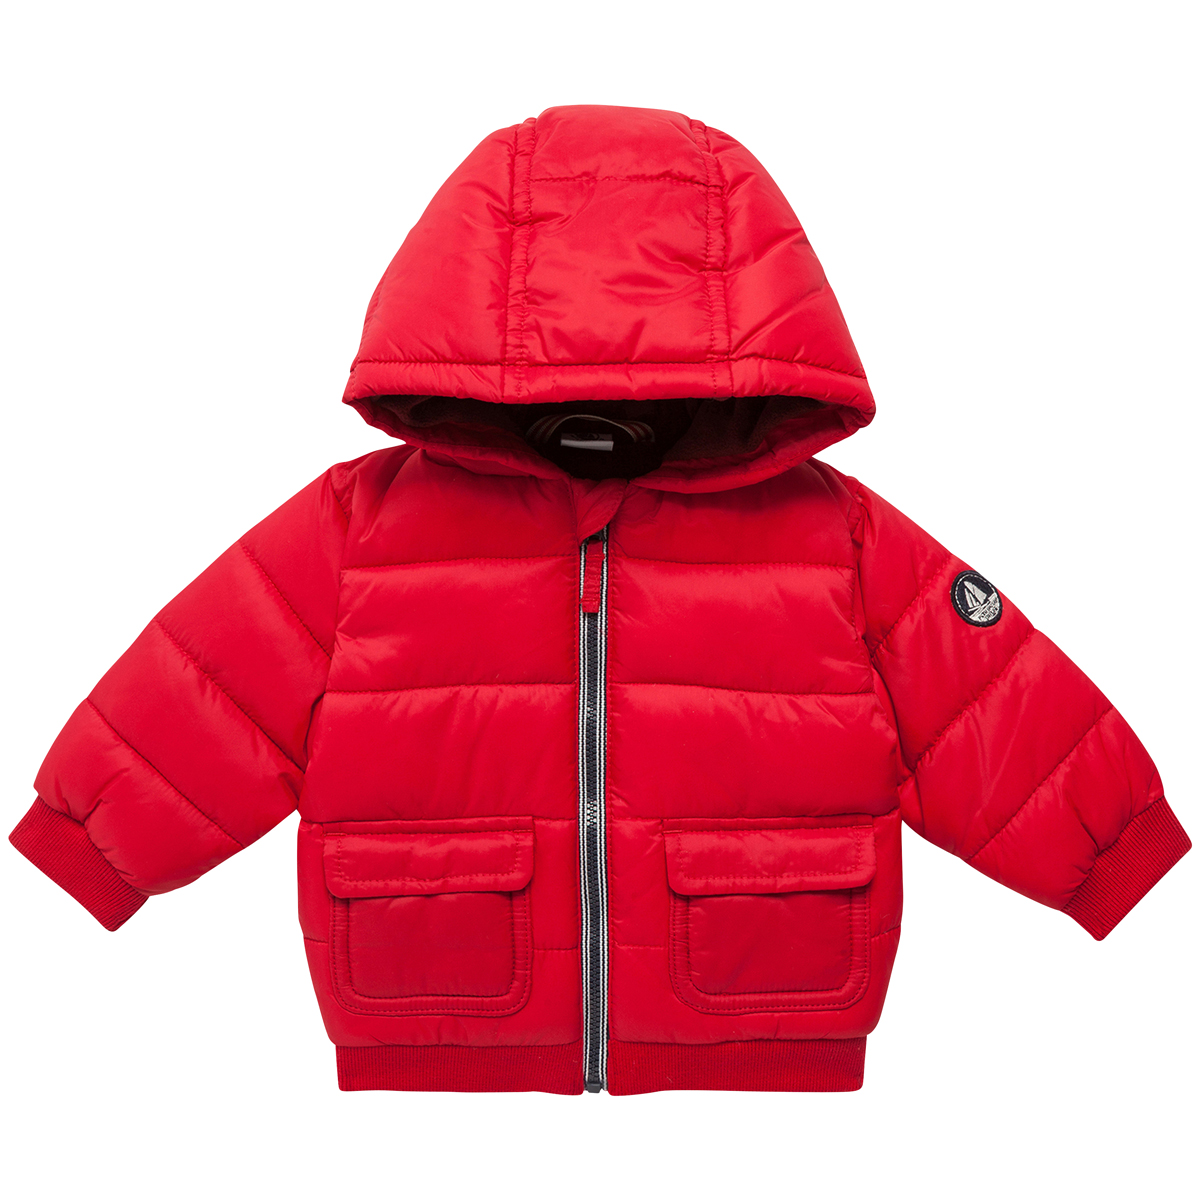 7c70f67e5 Petit Bateau Baby Boy Padded Winter Jacket in Red